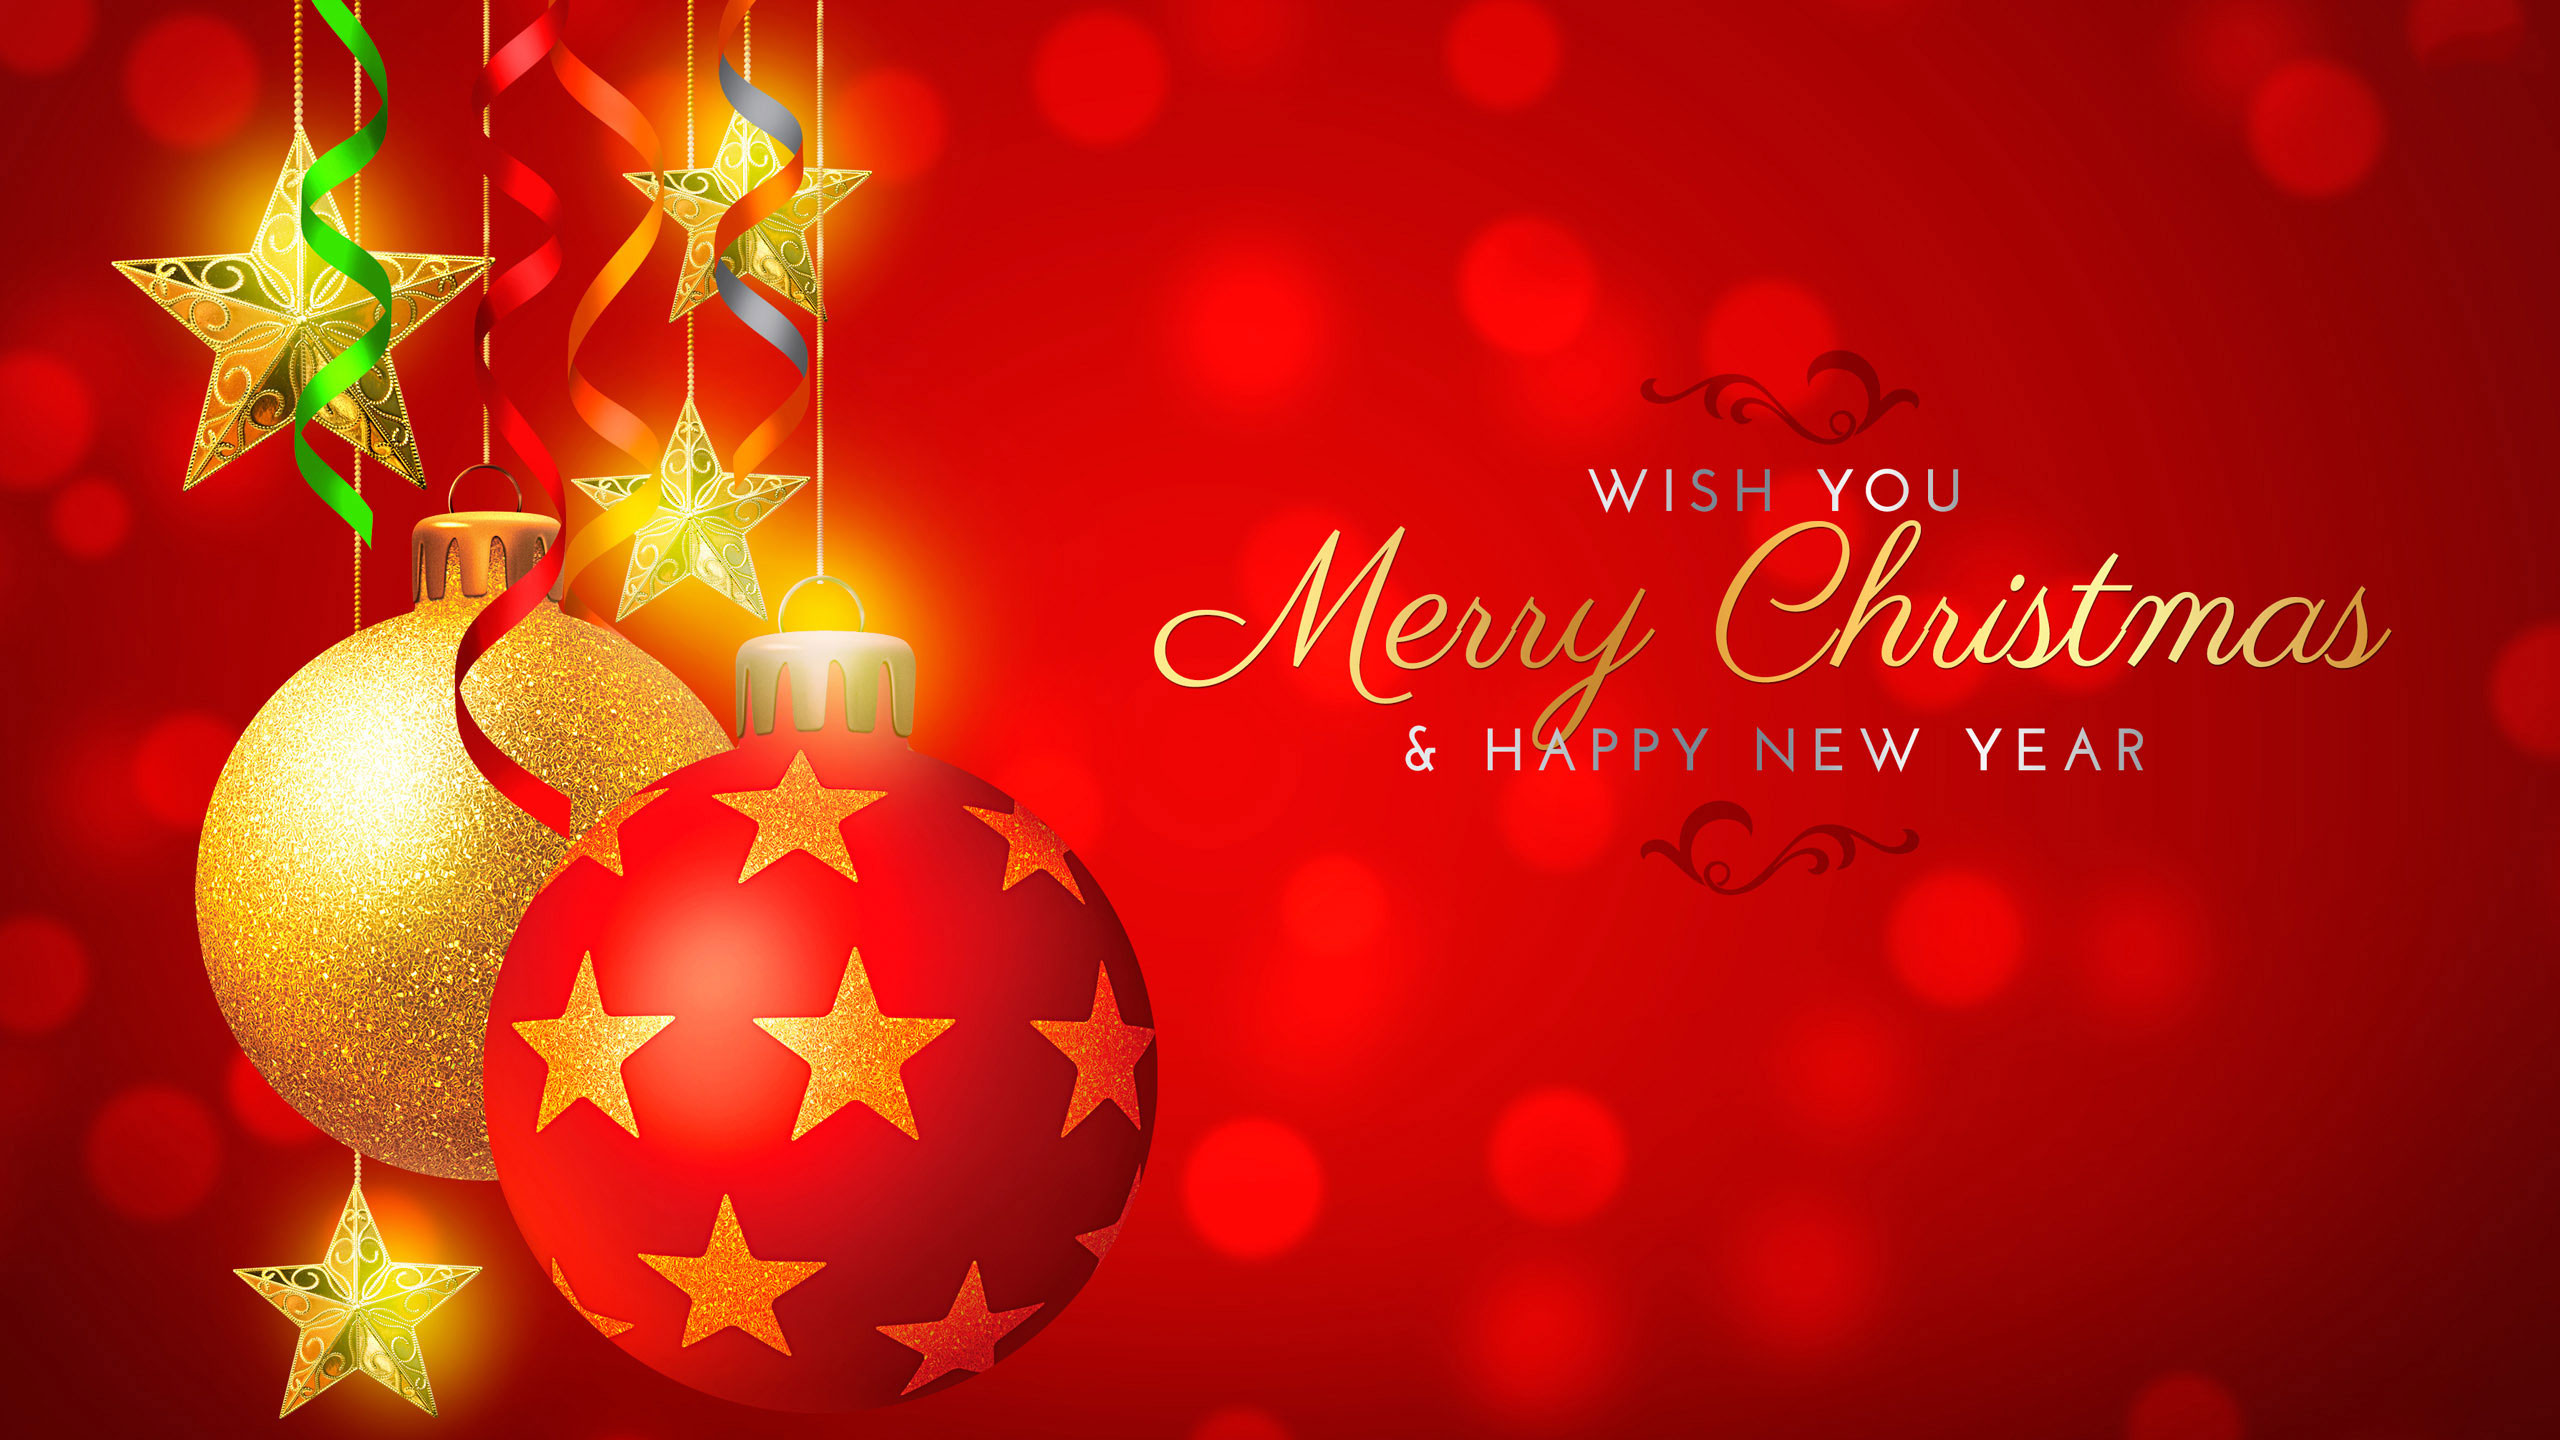 Wish You Merry Christmas and Happy New Year HD Wallpaper